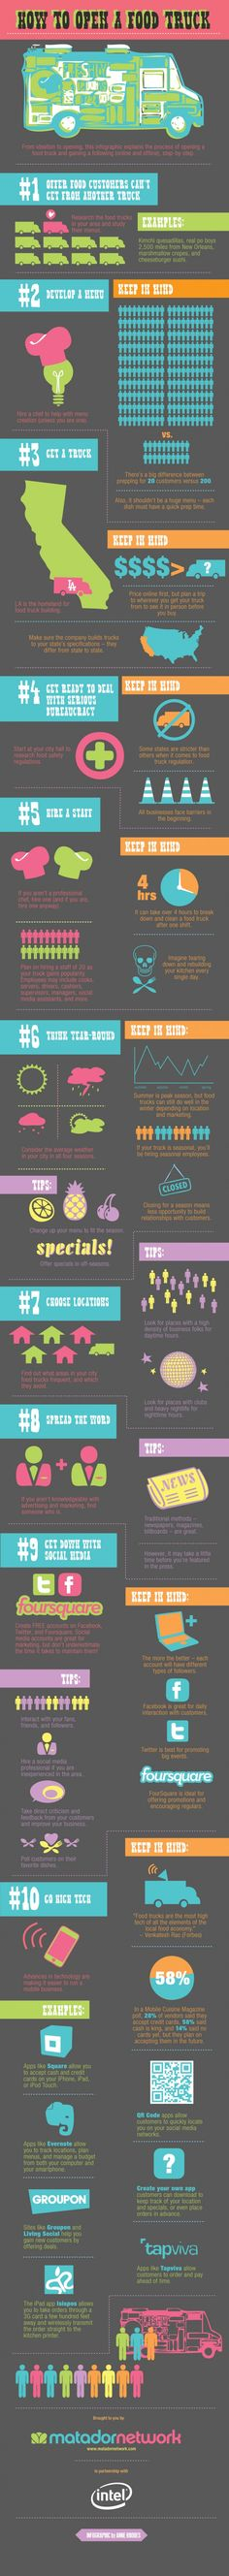 food truck, daily best infographic design, best infographic, cool infographic, new business, food truck business